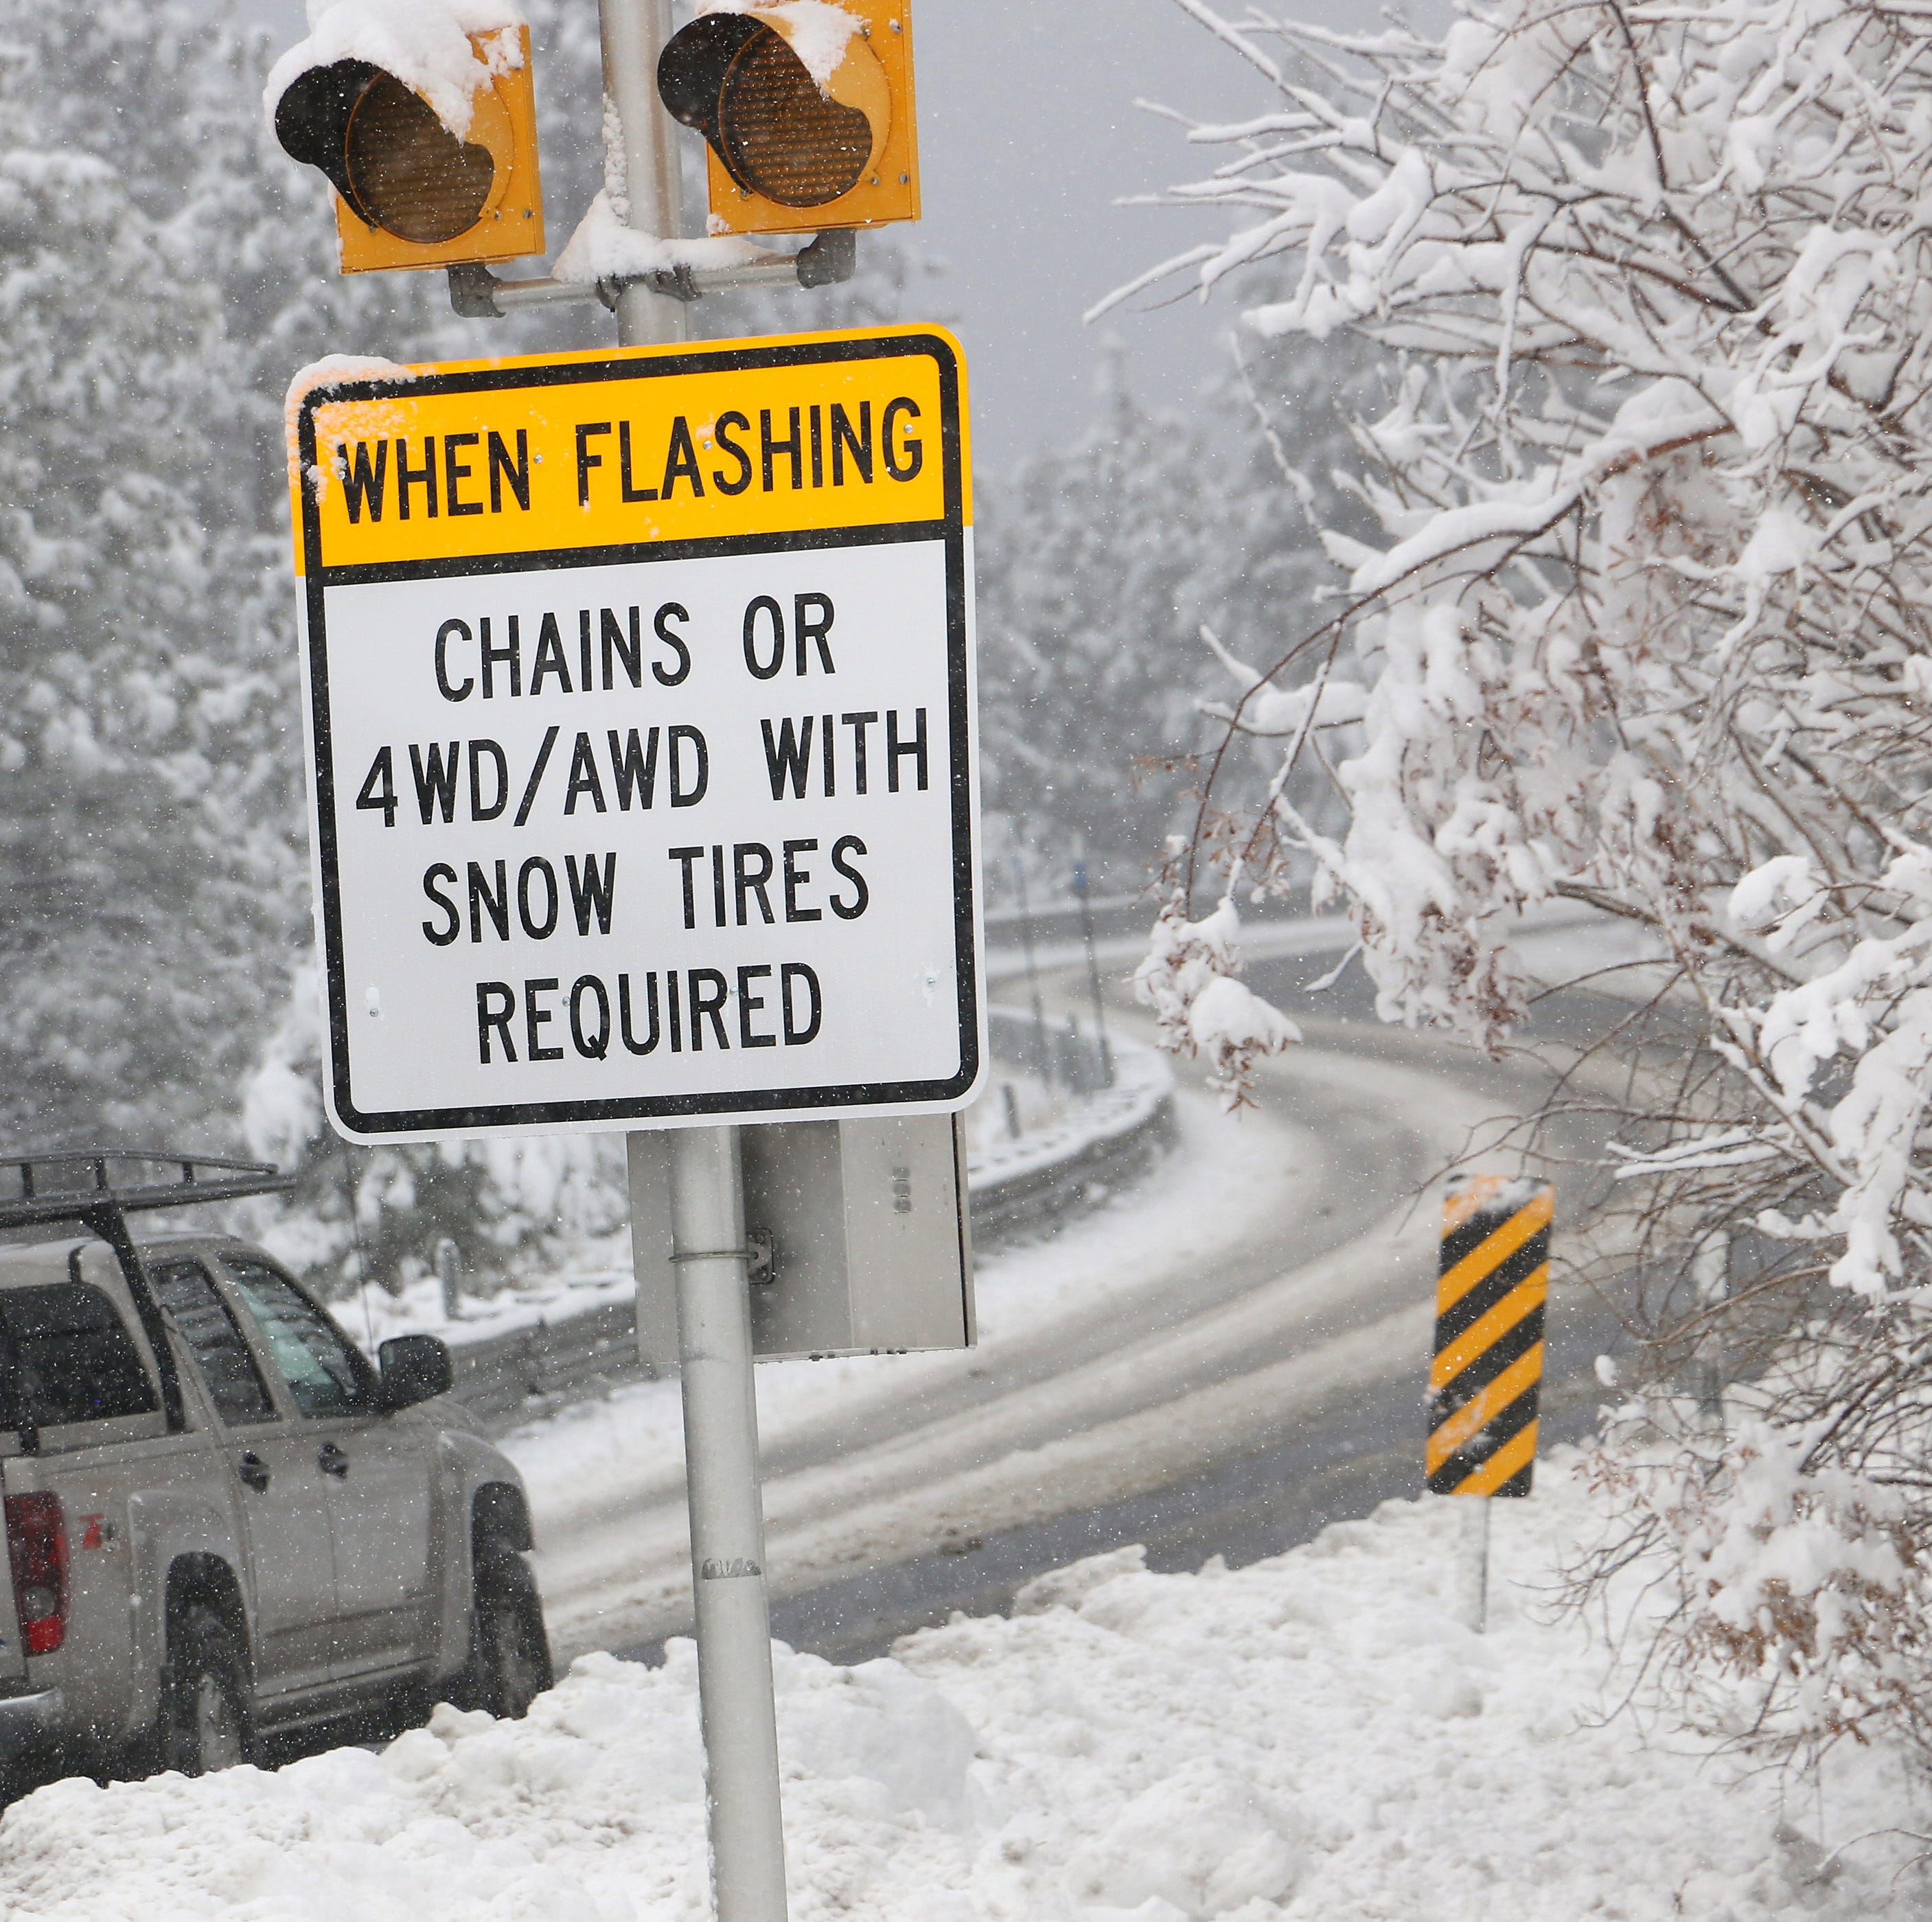 A winter storm is headed for Lake Tahoe, Sierra region — Here's what to expect